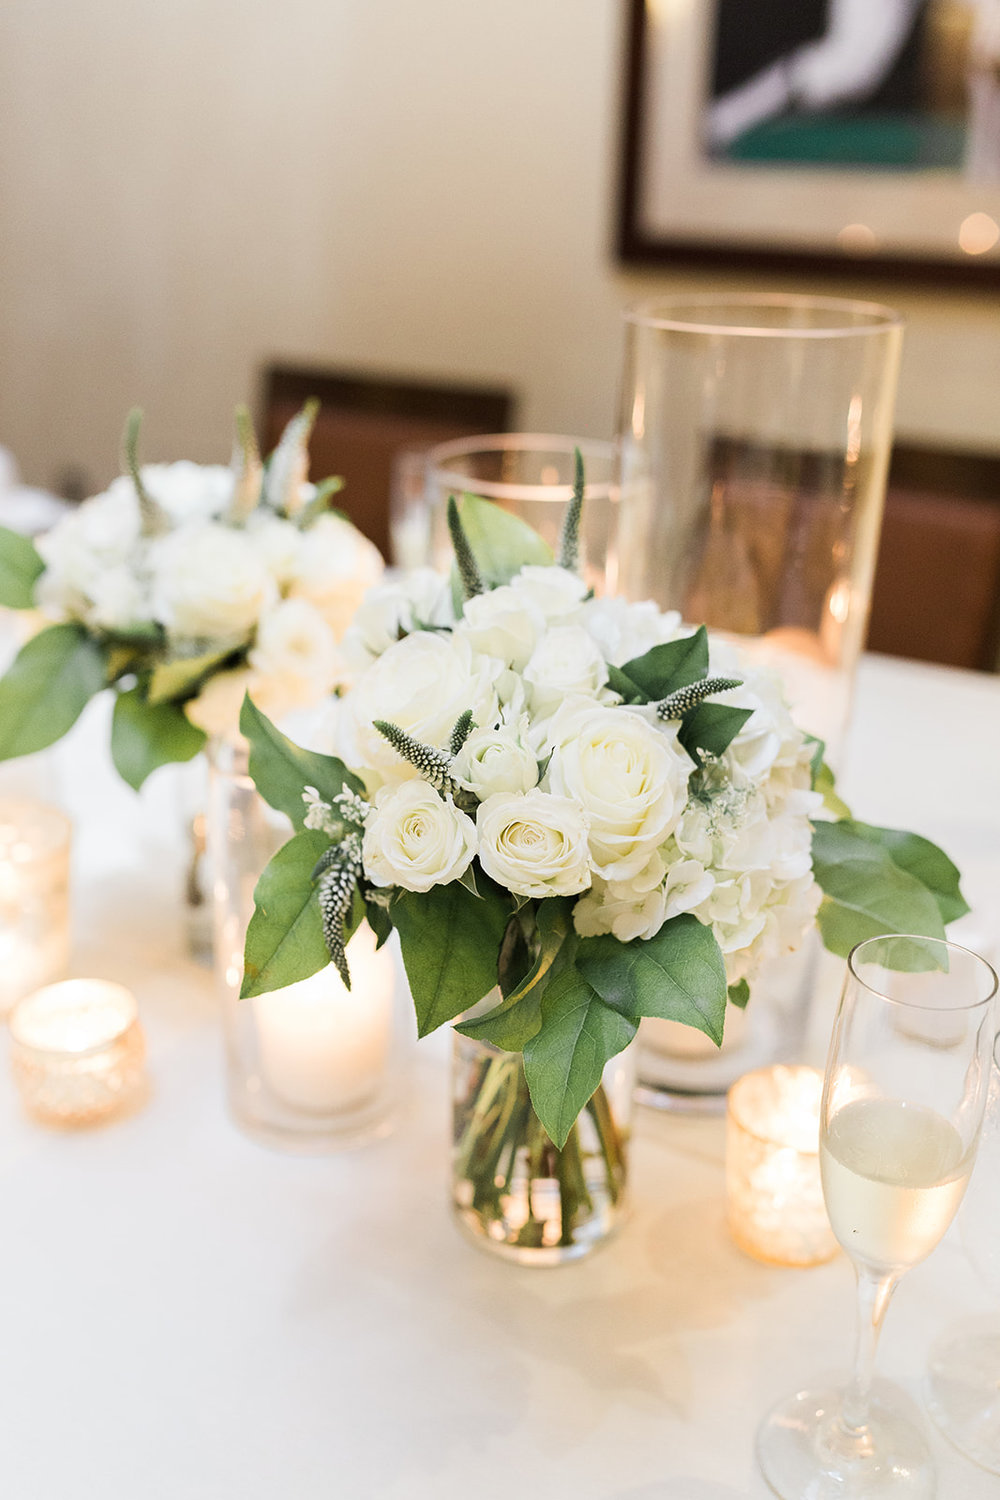 Low wedding centerpieces with white flowers and candles for Pittsburgh wedding at PNC Park planned by Exhale Events. Find more wedding inspiration at exhale-events.com!